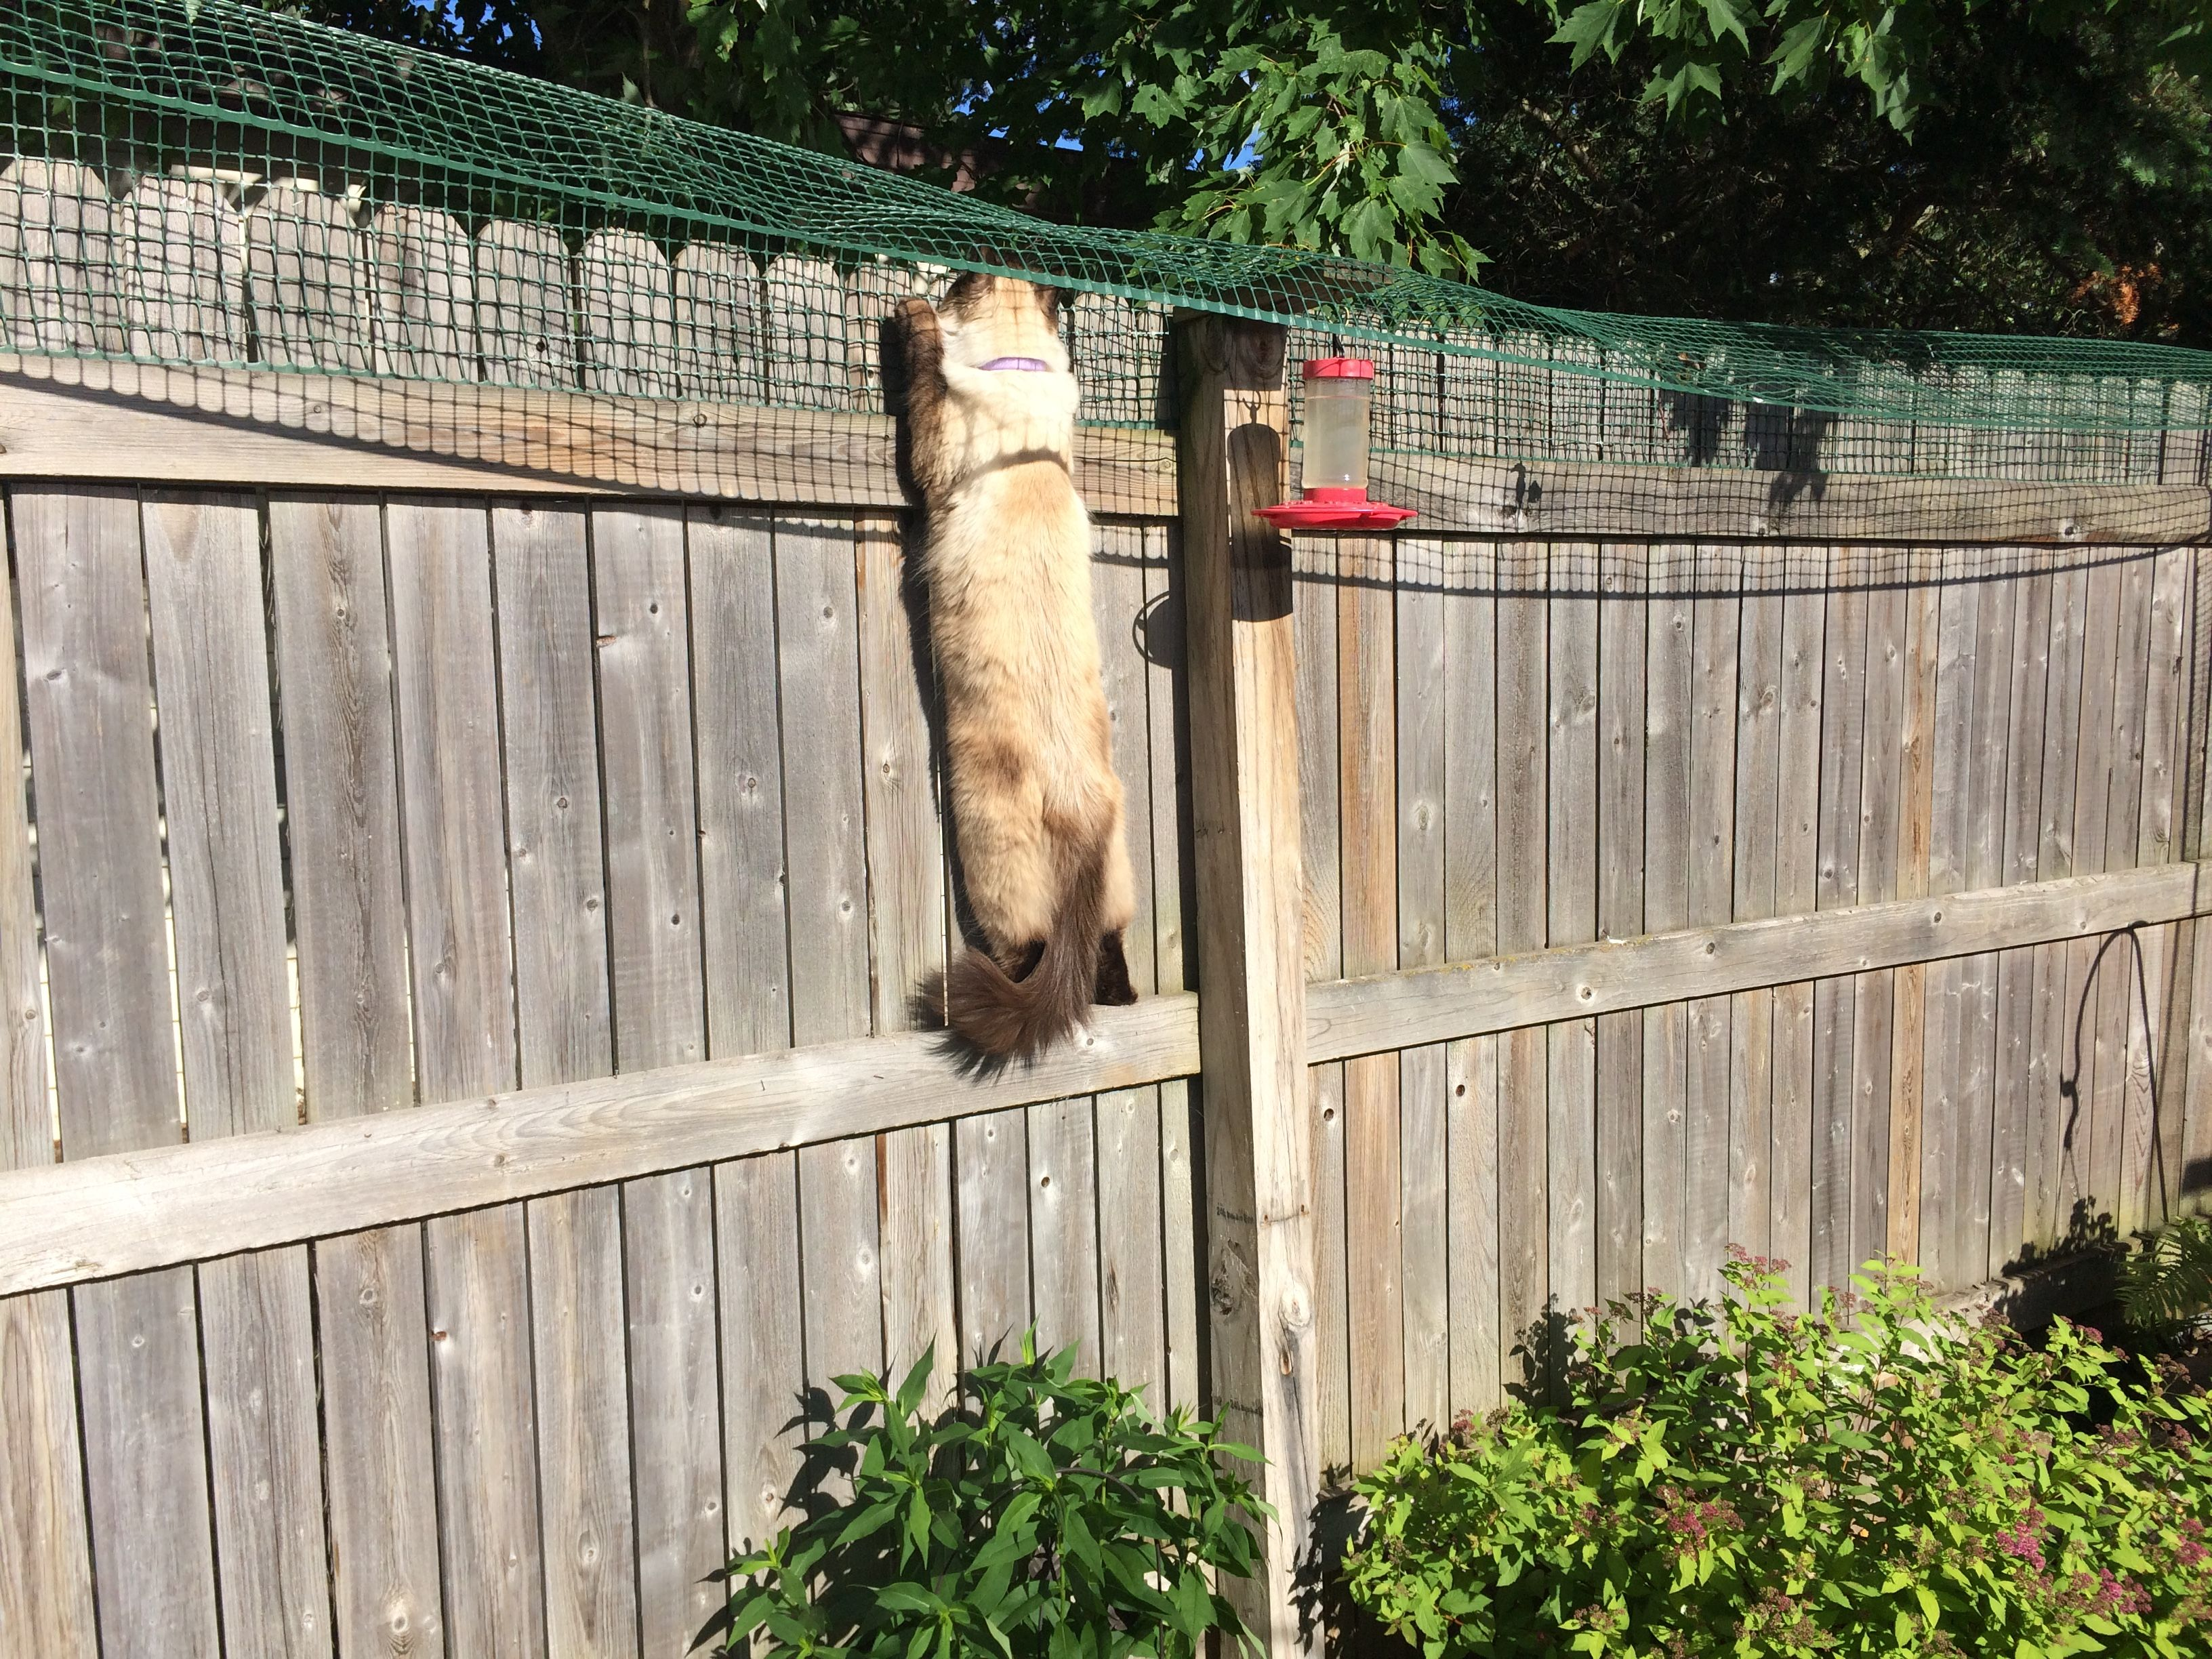 Cat Containment Fence: One Reader Shares How He Contains ...